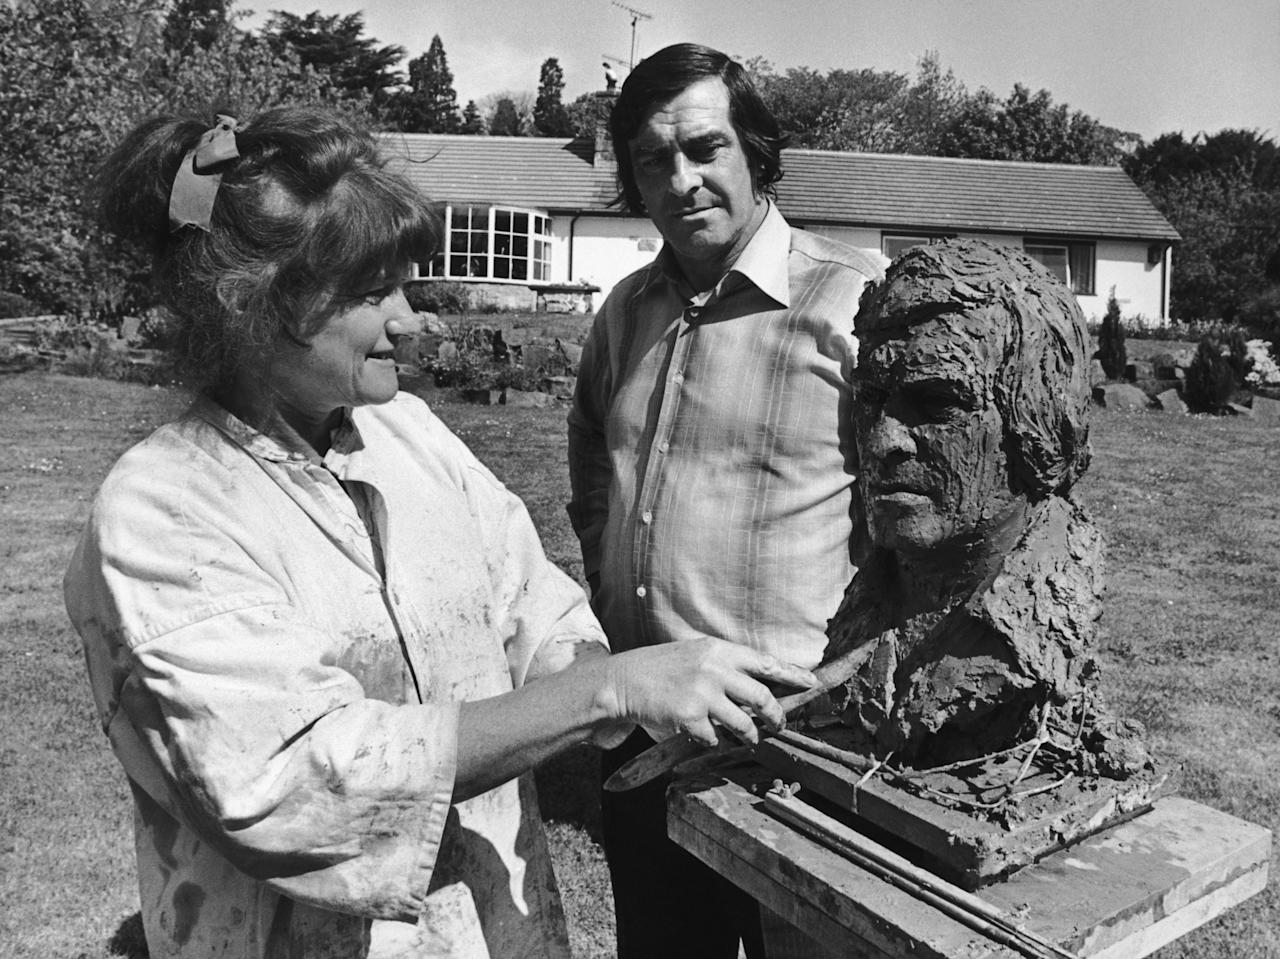 Ace bowler Fred Trueman (1931 - 2006) looks on as sculptor Betty Miller works to complete a bust of him, in the garden of his Gargrave home, 10th June 1977. (Photo by Keystone/Hulton Archive/Getty Images)